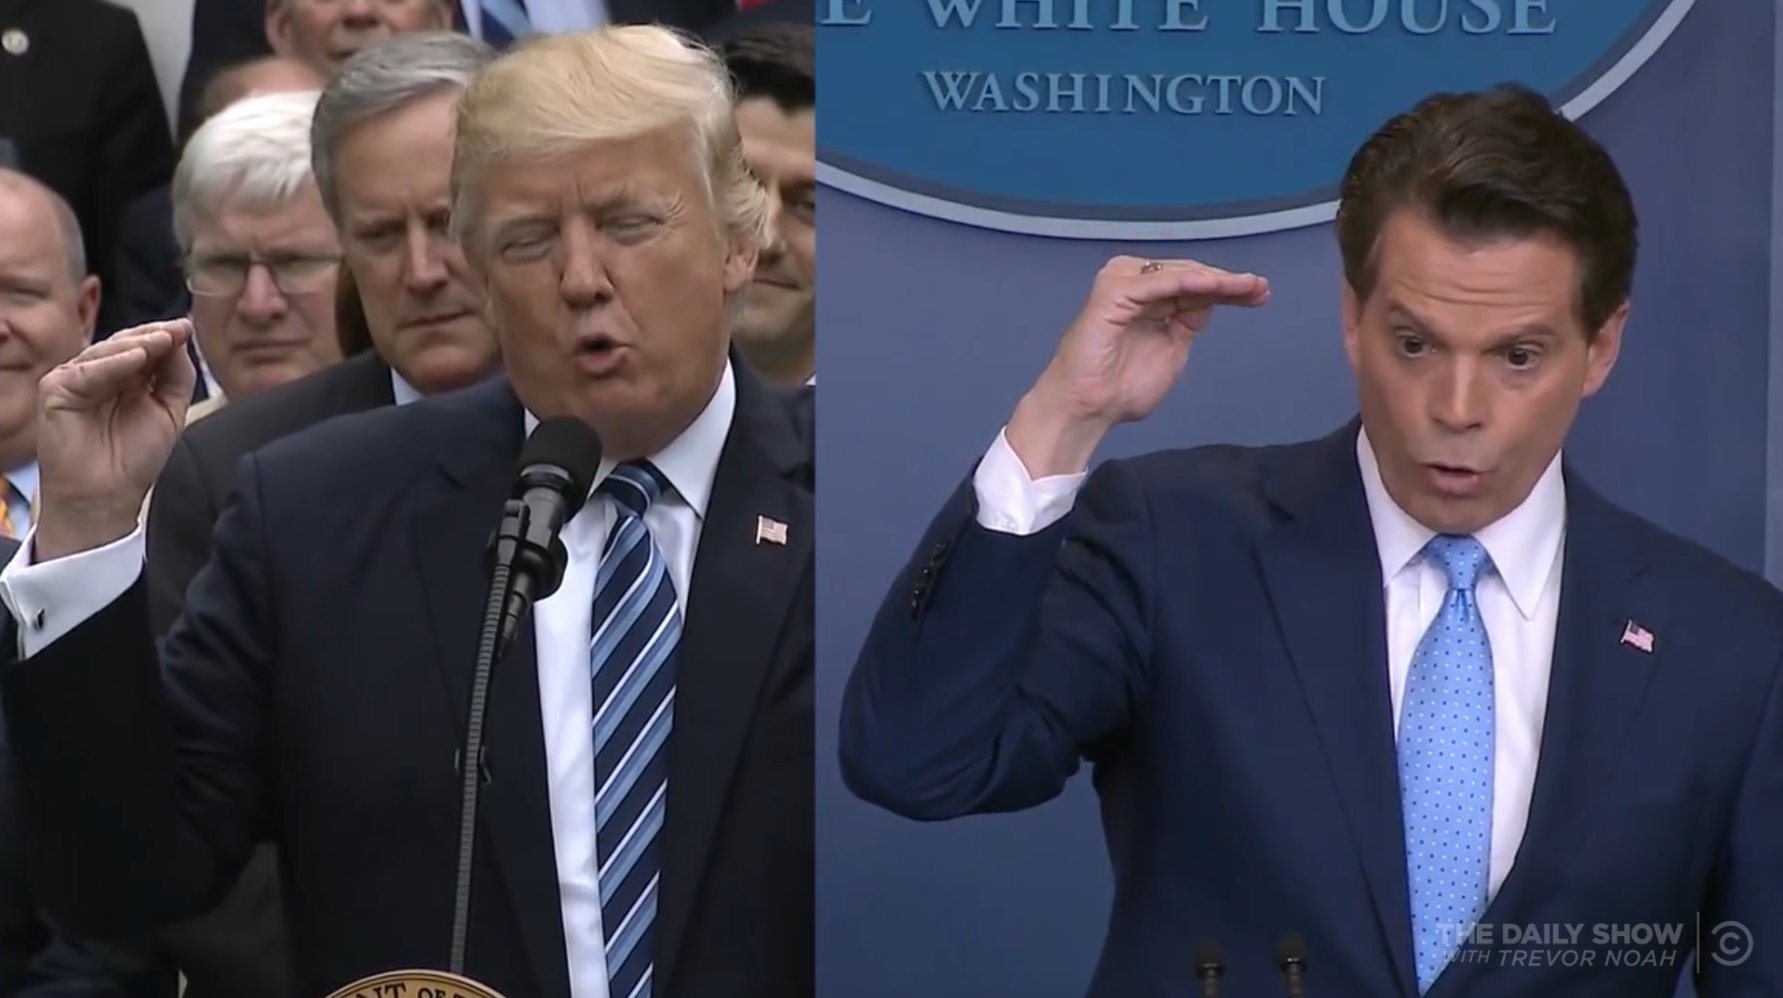 The Mooch did his homework. https://t.co/Wku0DF2ovd